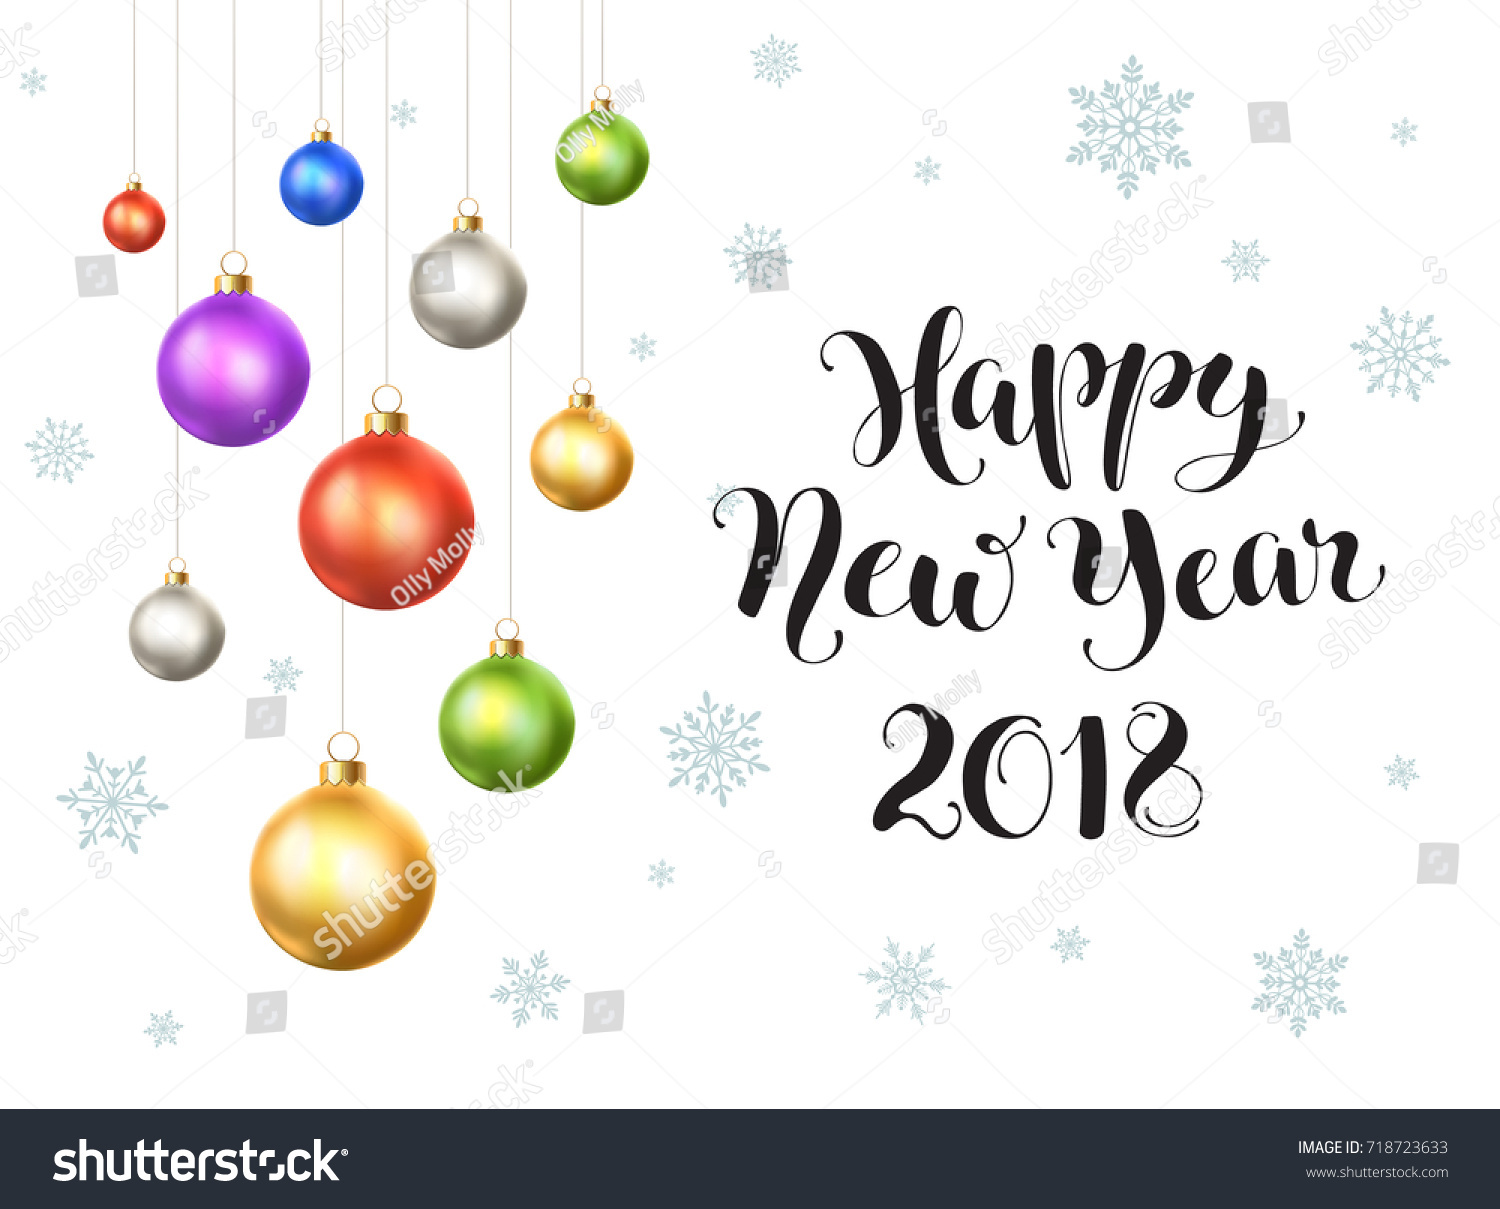 Happy New Year 2018 Postcard Template Stock Vector (Royalty Free ...